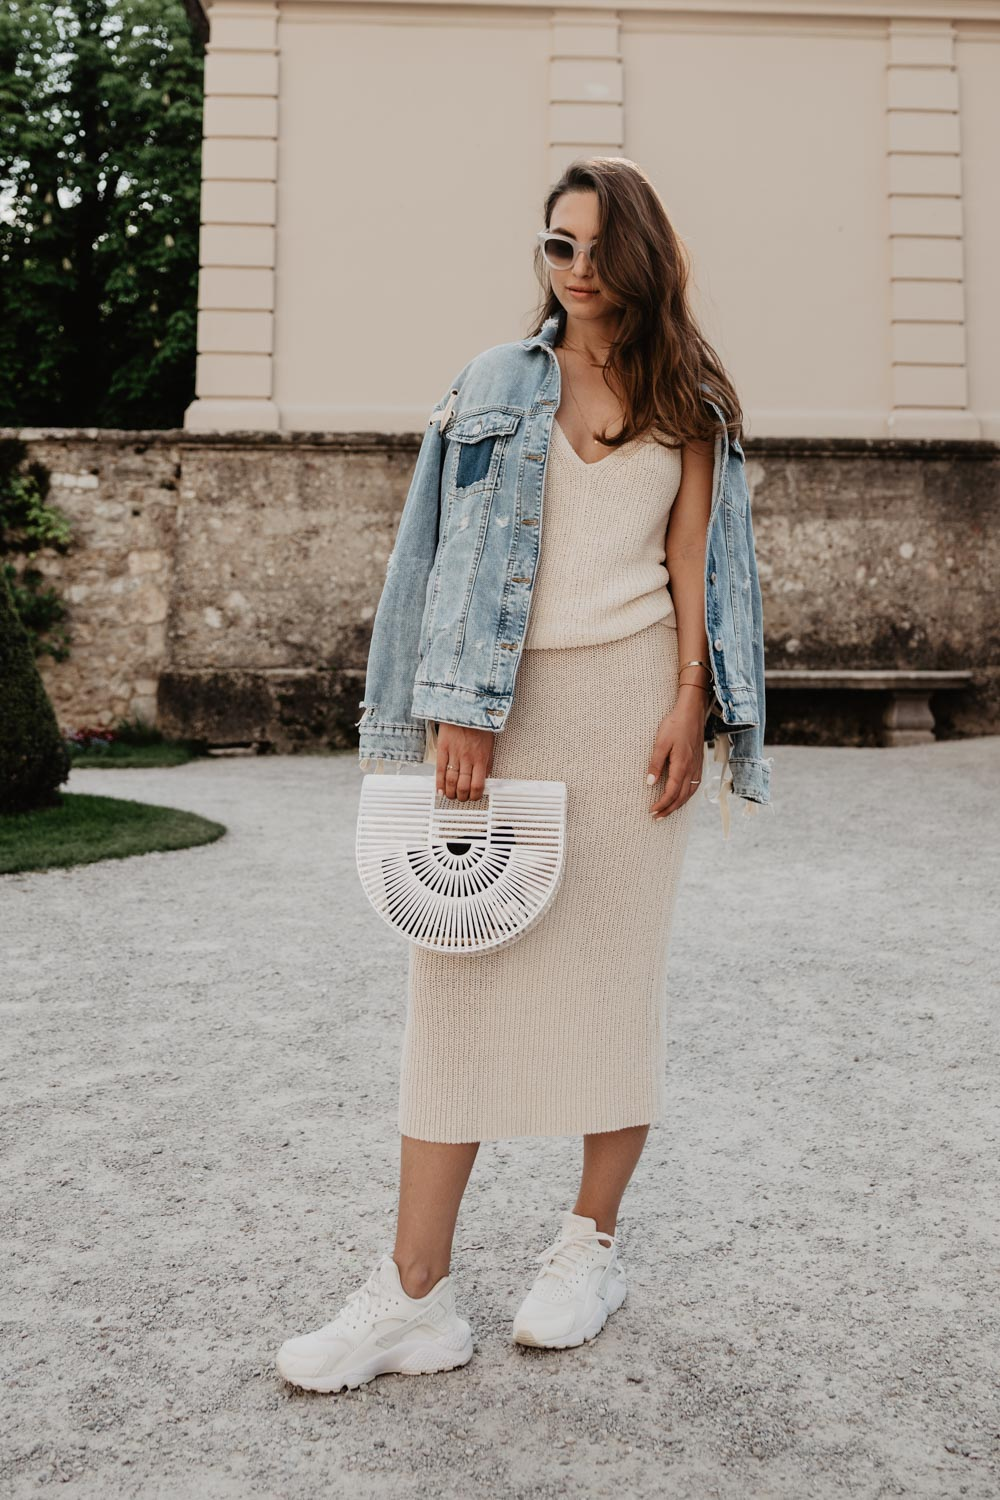 Outfit: The Lost Outfit | Cult Gaia Ark Bag, Nike Huarache, Knit Skirt, Denim Jacket, Céline Sunglasses | you rock my life | ninawro